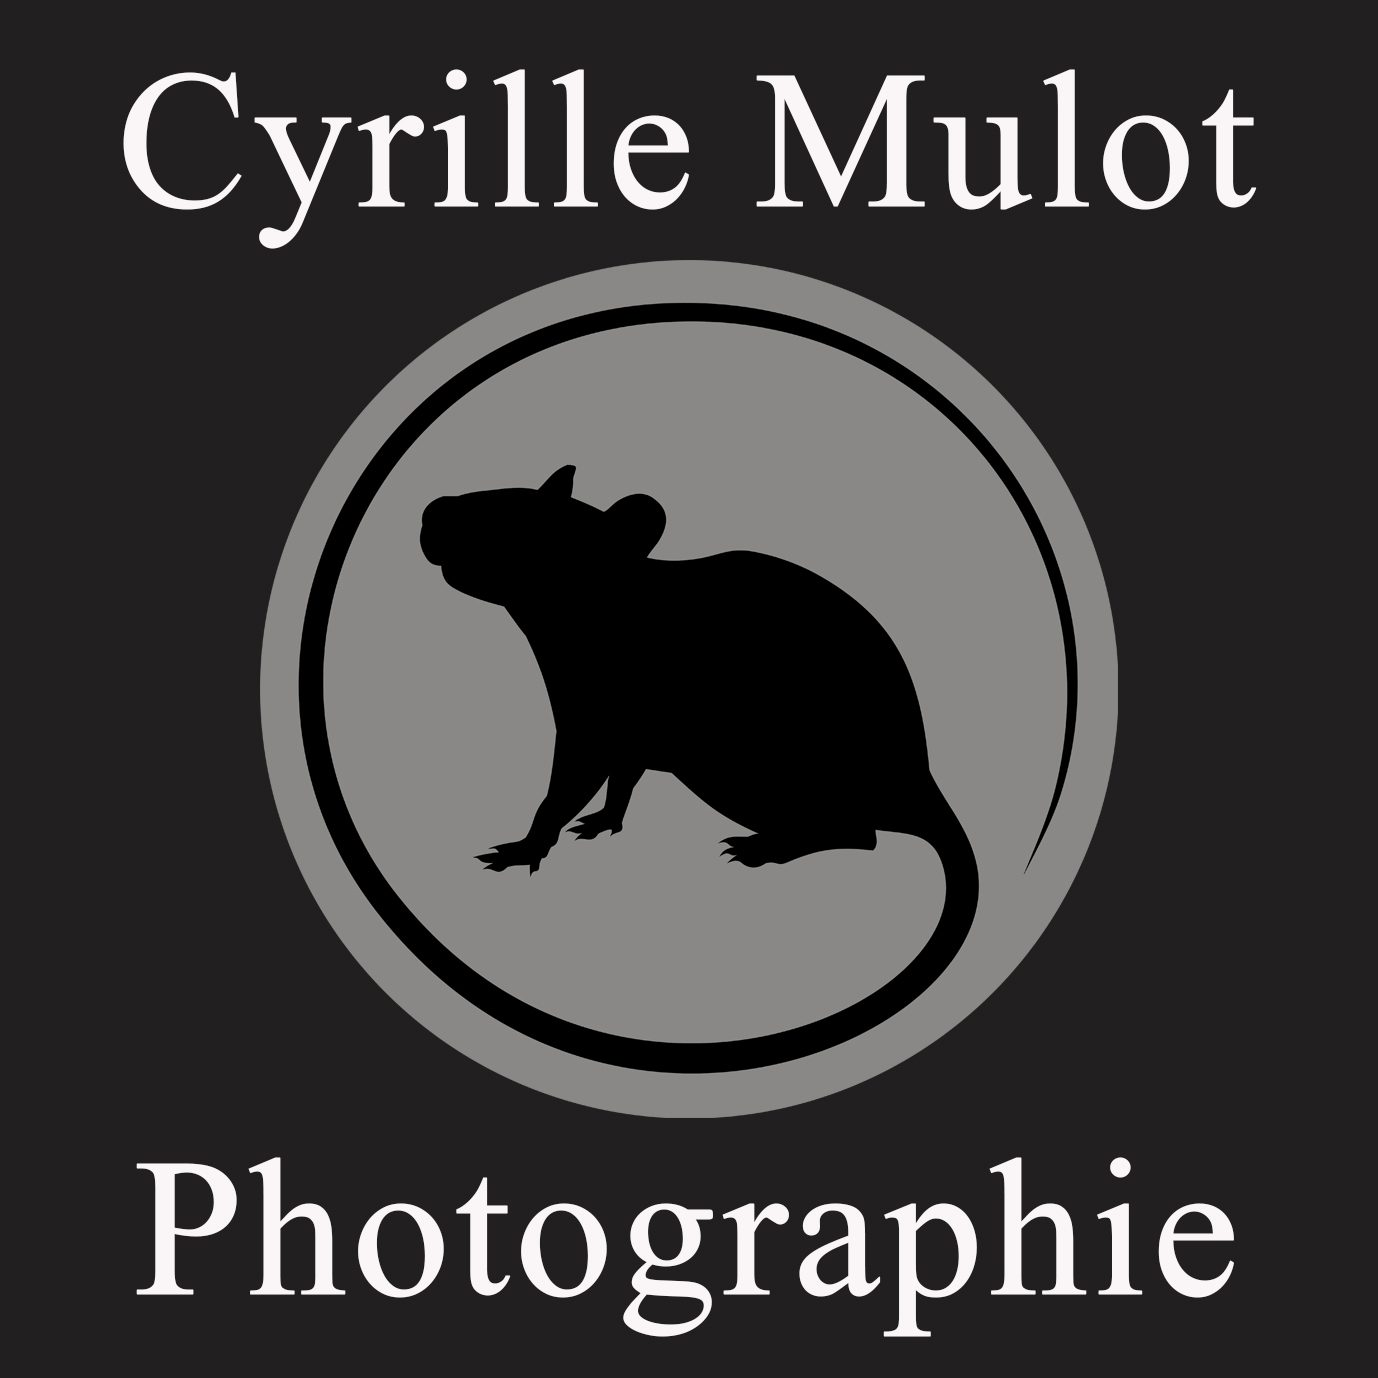 Cyrille Mulot Photographie